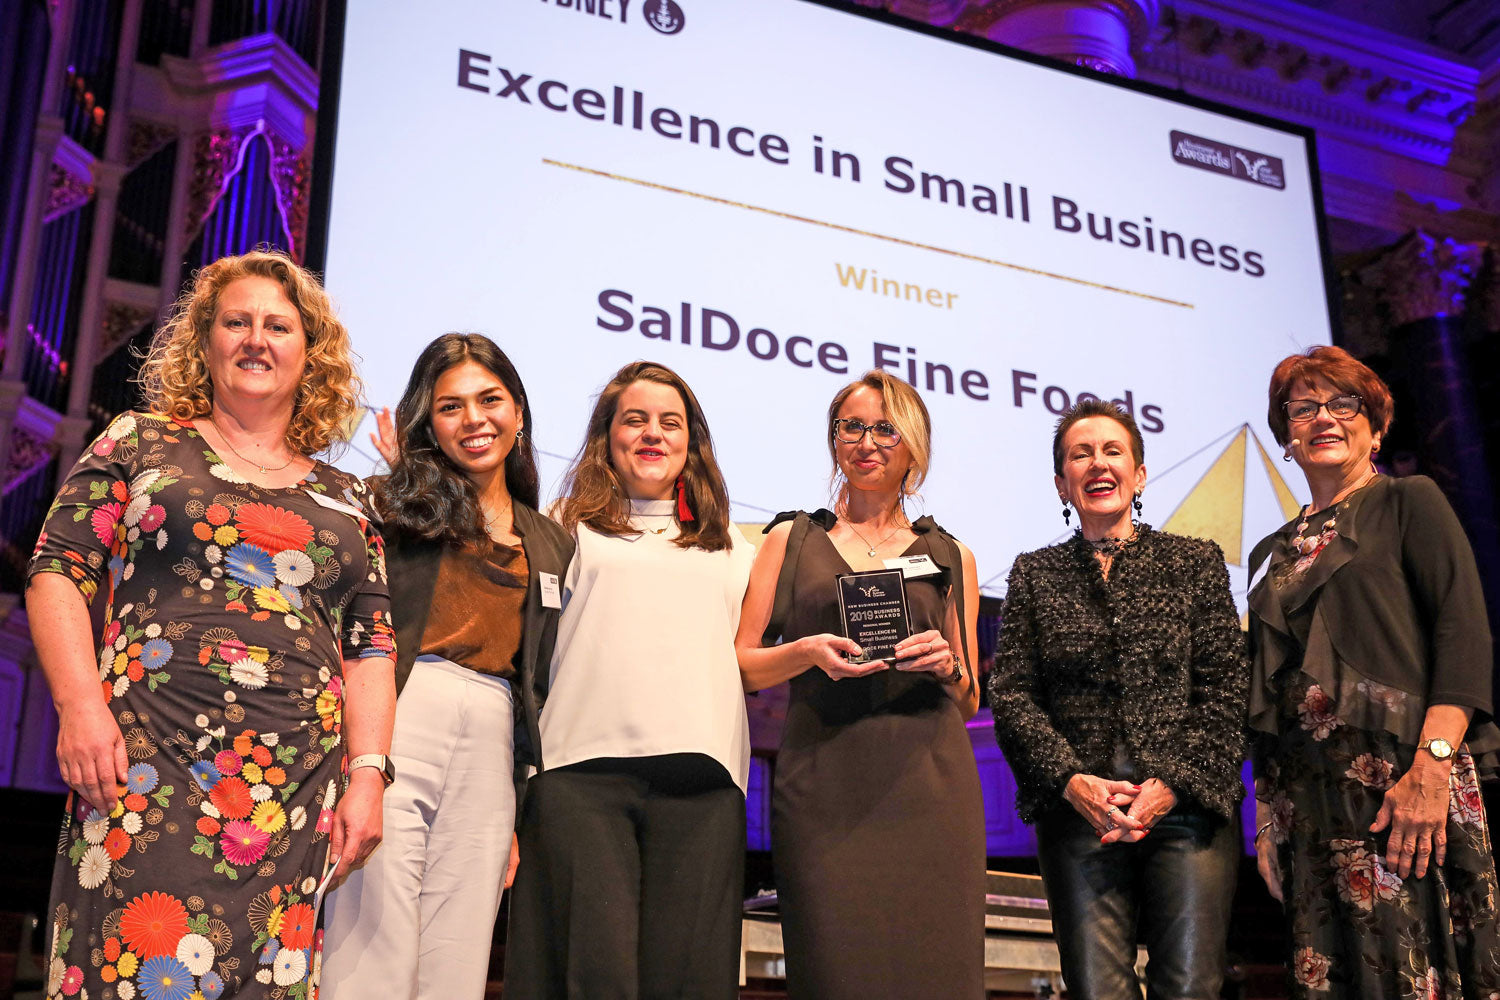 janica barrios janz kate mortensen martin talacko cristina yesyoucan saldoce fine foods business awards chamber commerce nsw sydney